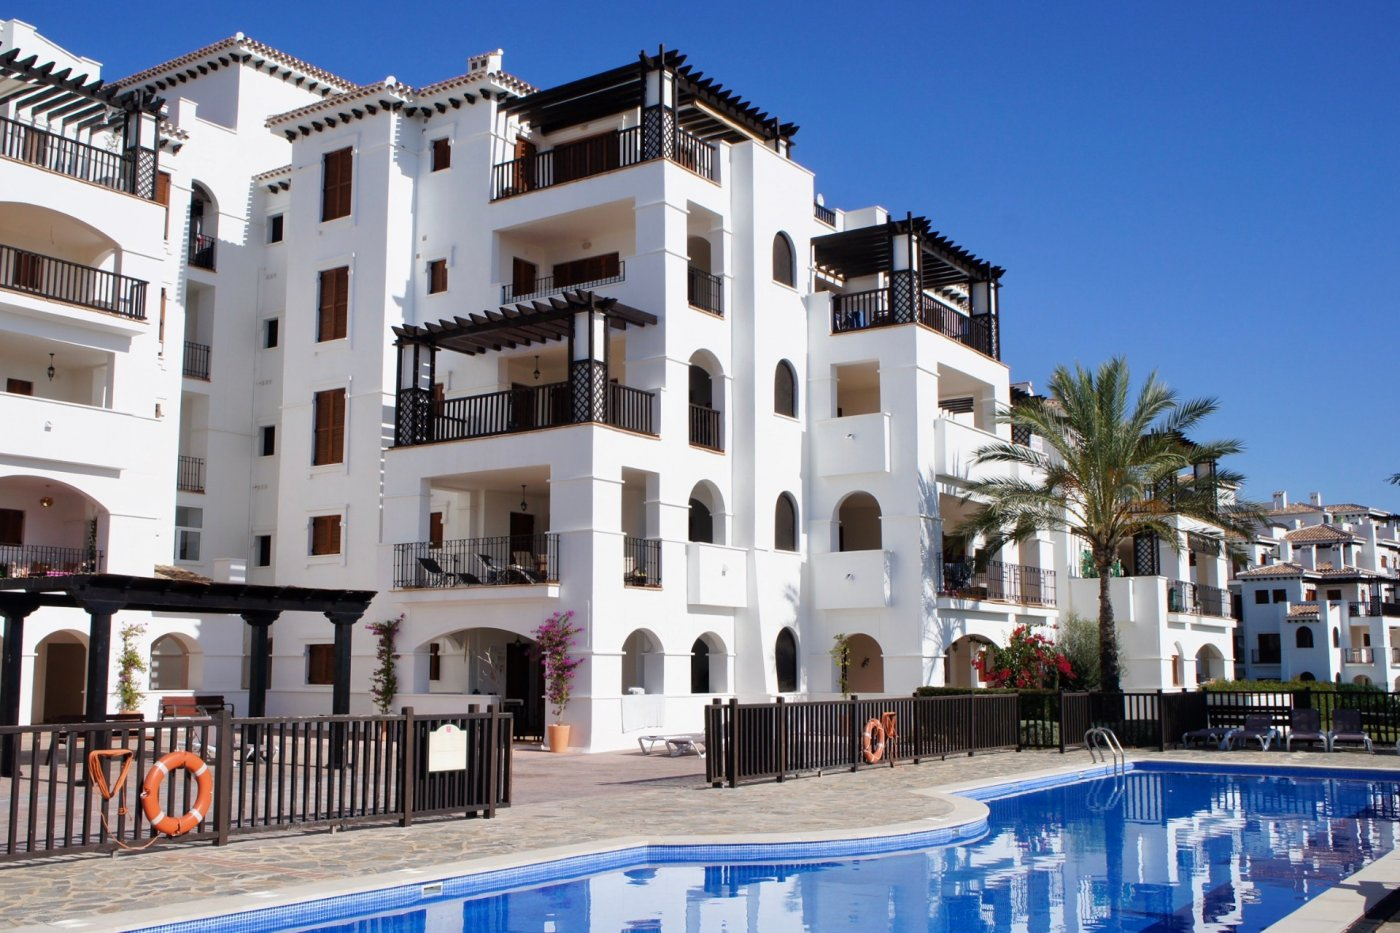 Image 2 Apartment ref 3265-03114 for sale in El Valle Golf Resort Spain - Quality Homes Costa Cálida